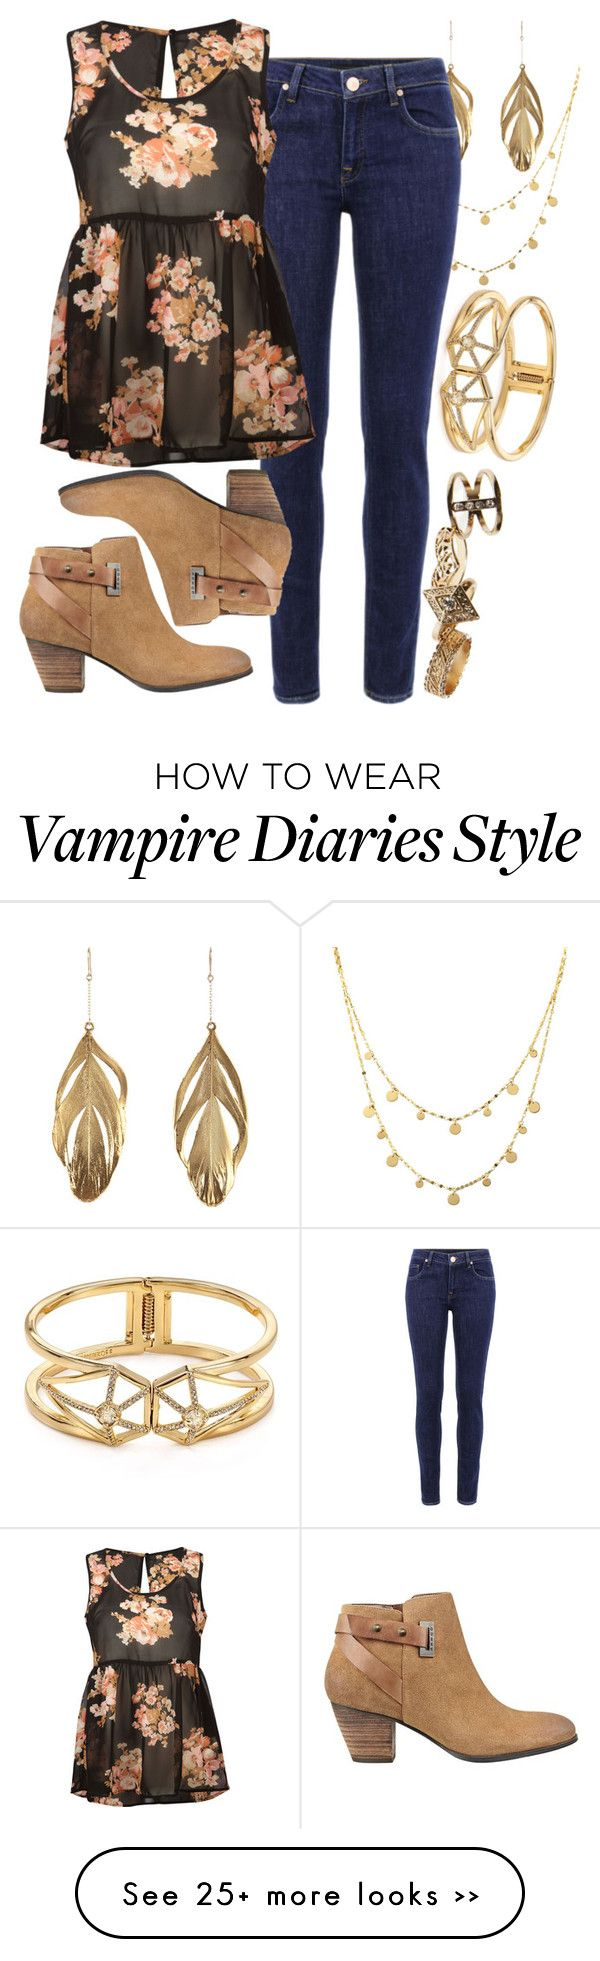 """""""Bonnie Wright: The Vampire Diaries"""" by xxxmakeawish on Polyvore"""